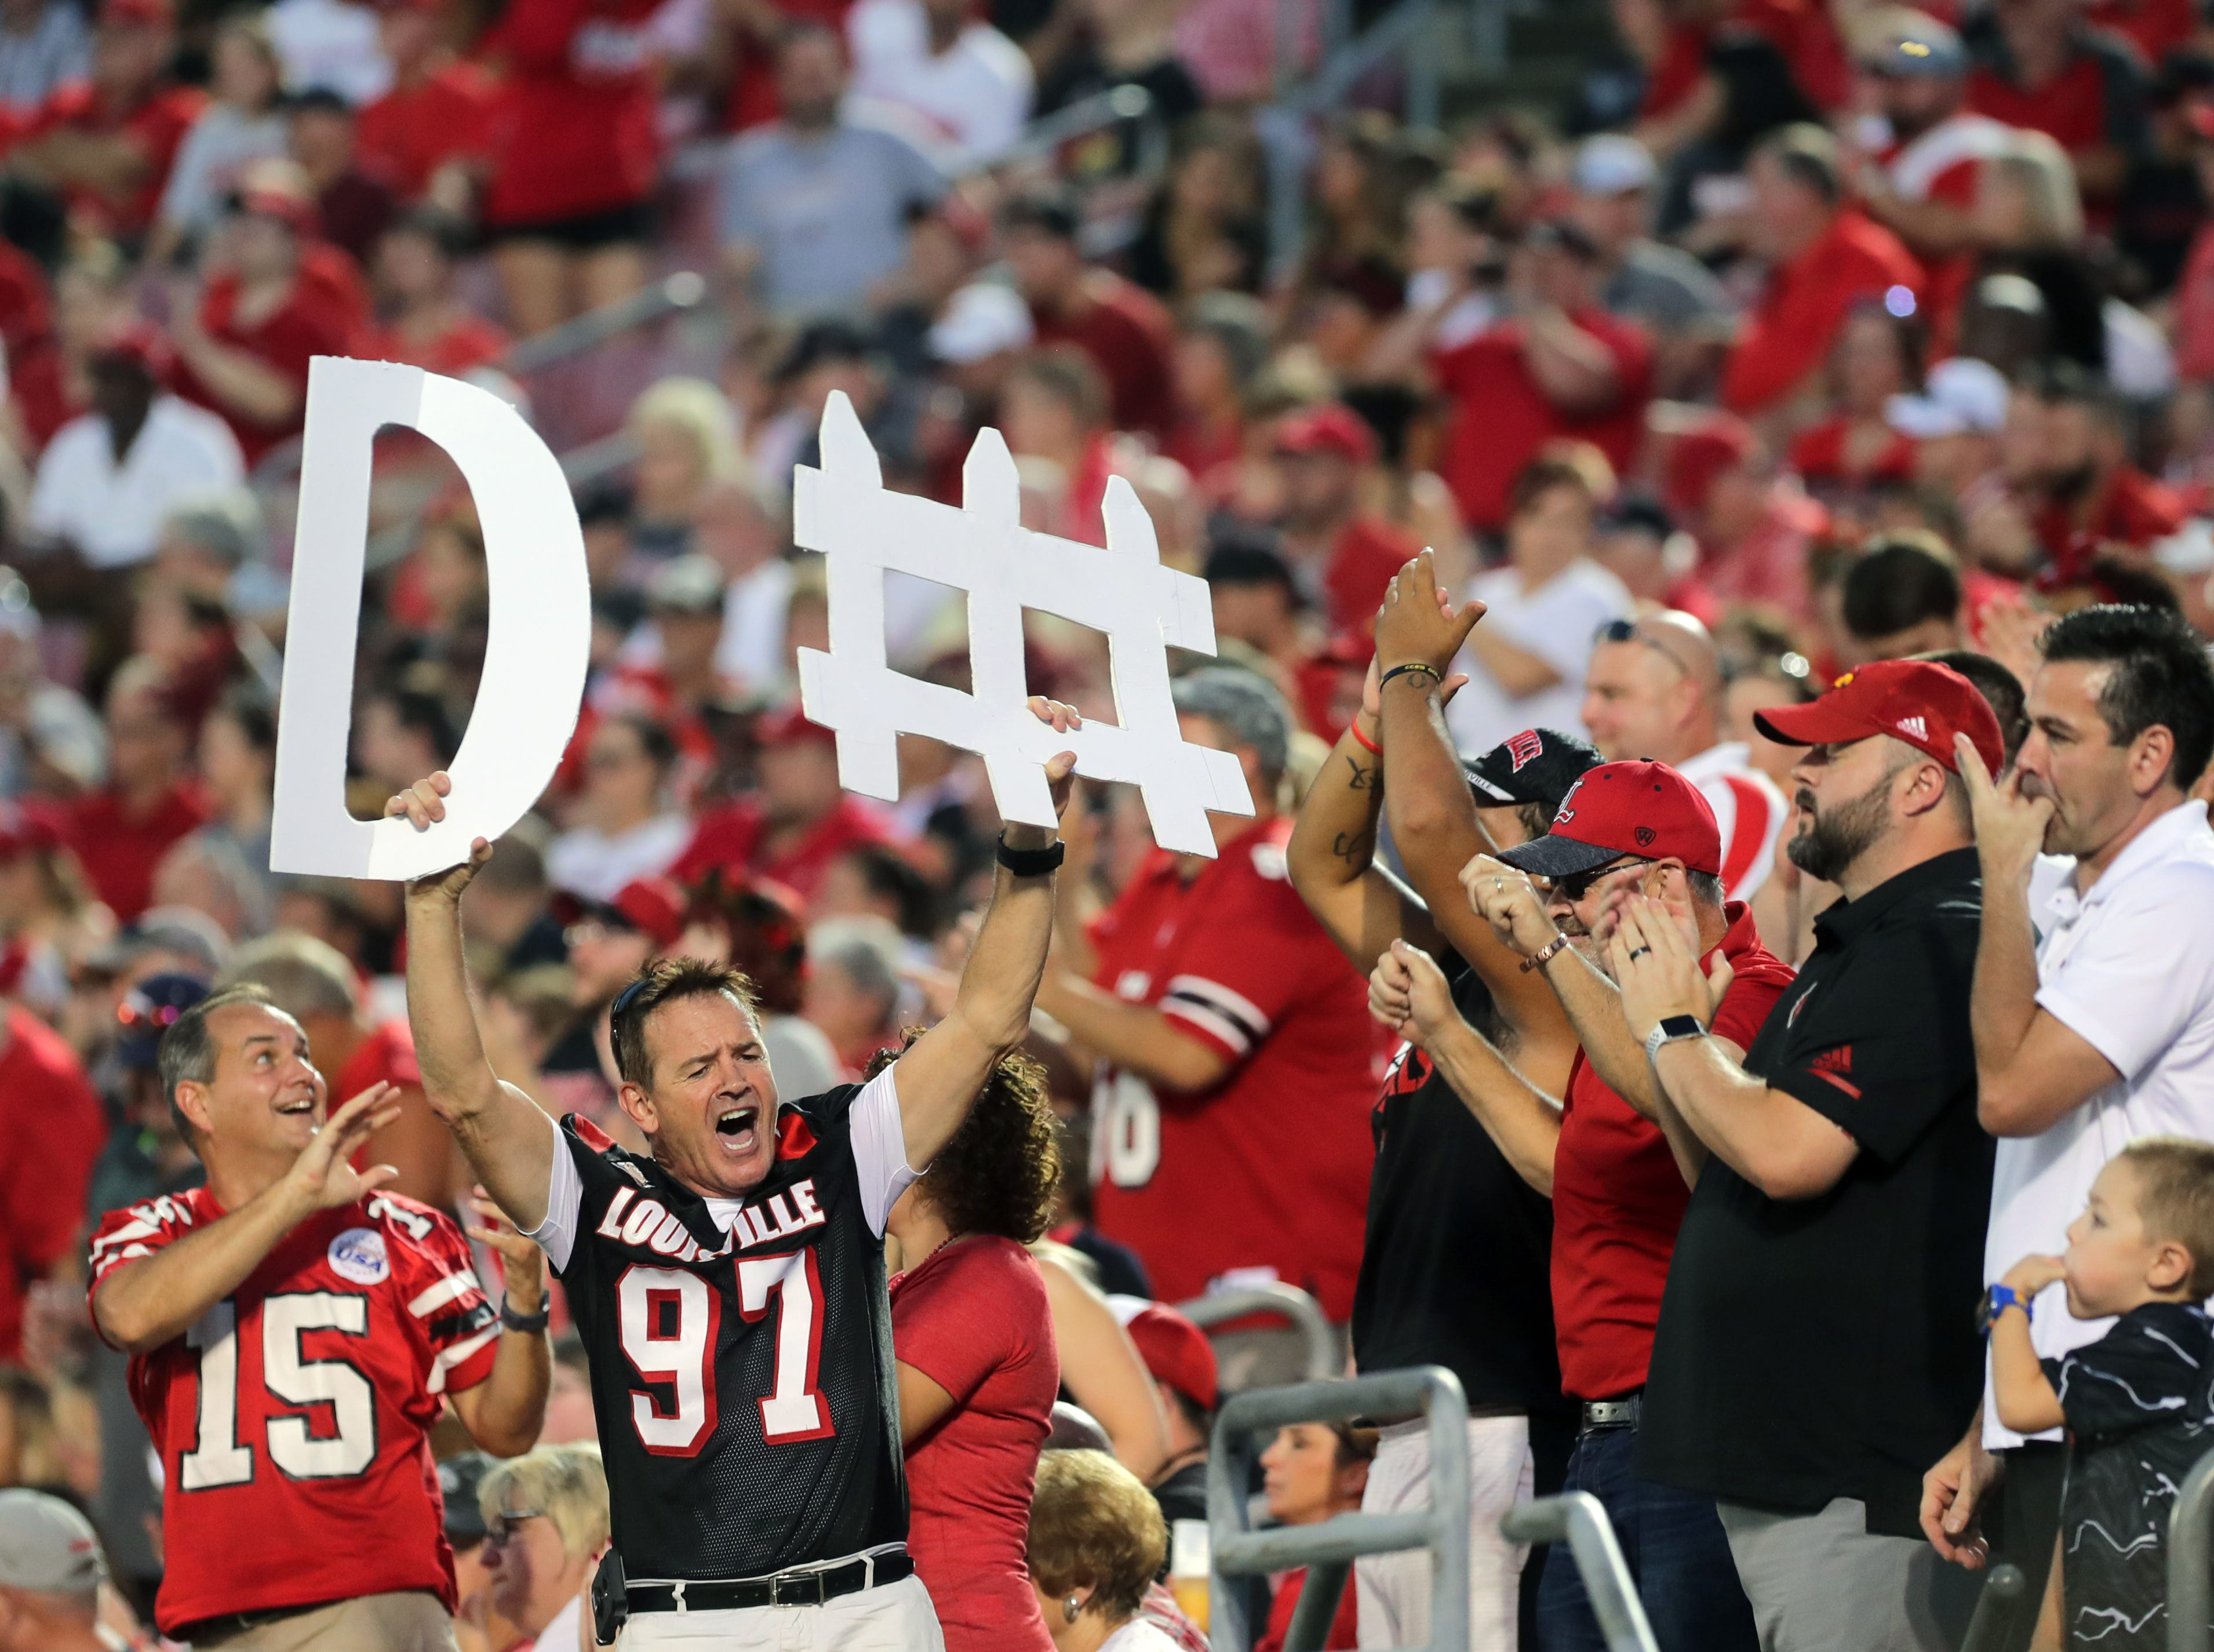 Louisville fans cheer on the team. 